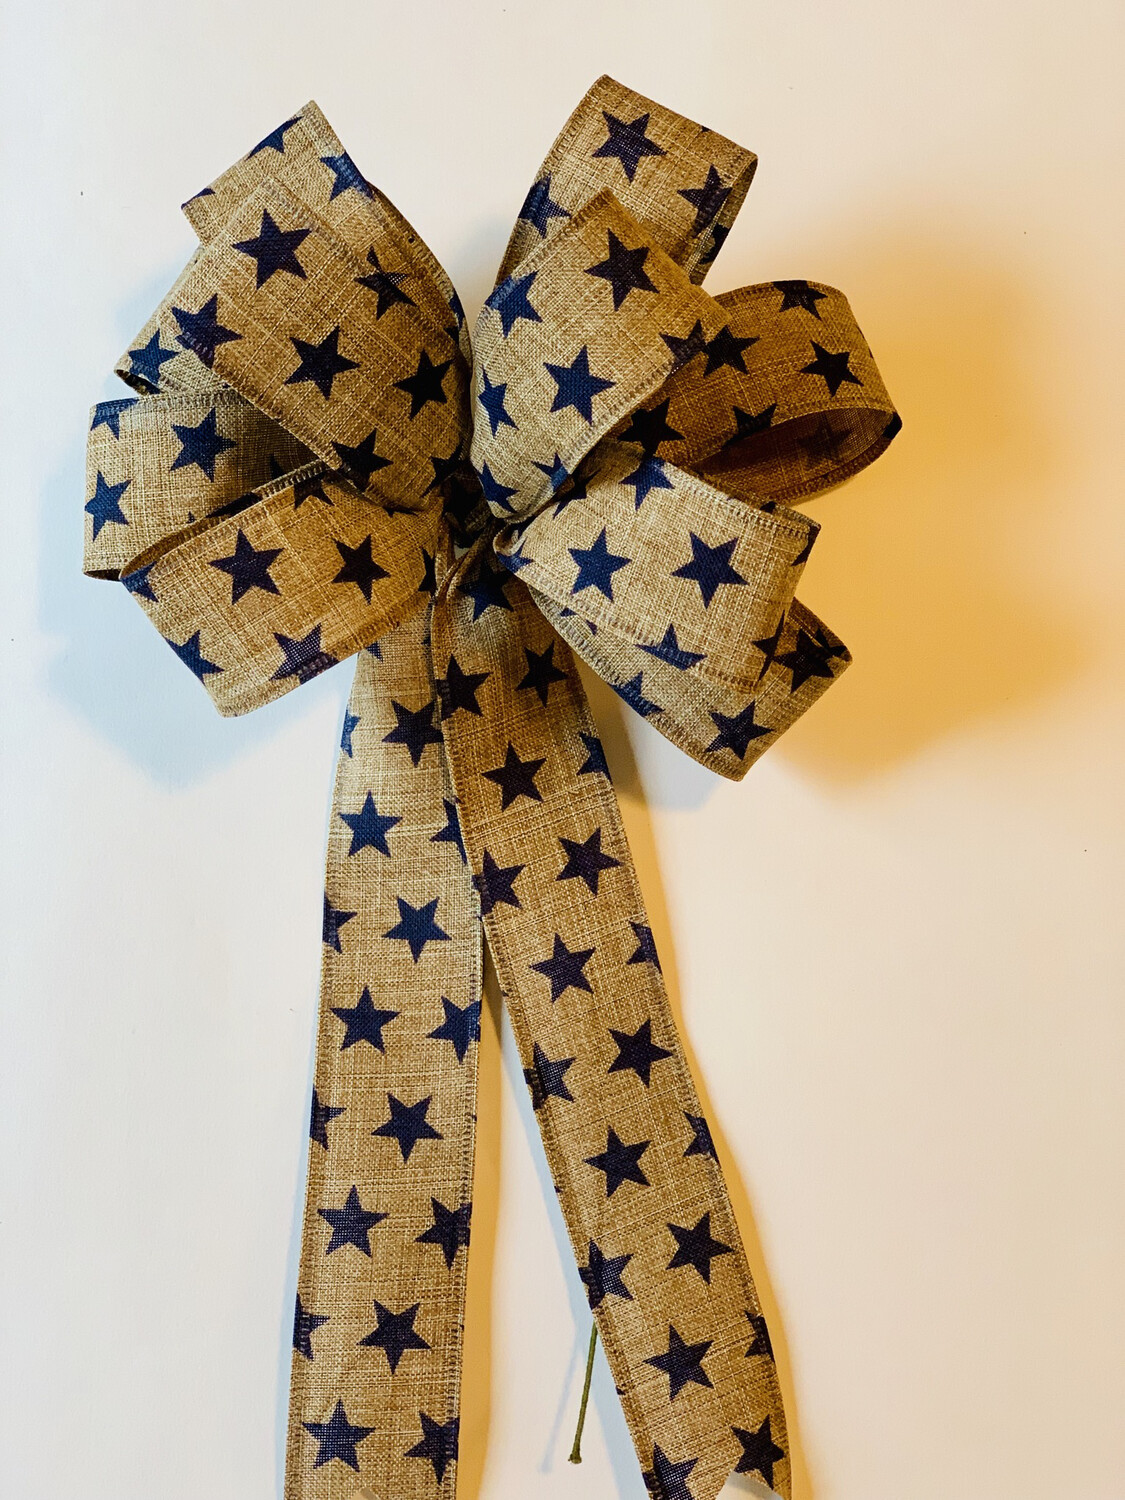 Patriotic Stars Tan Navy Natural Burlap Wreath Bow Candle Decoration A Touch of Faith